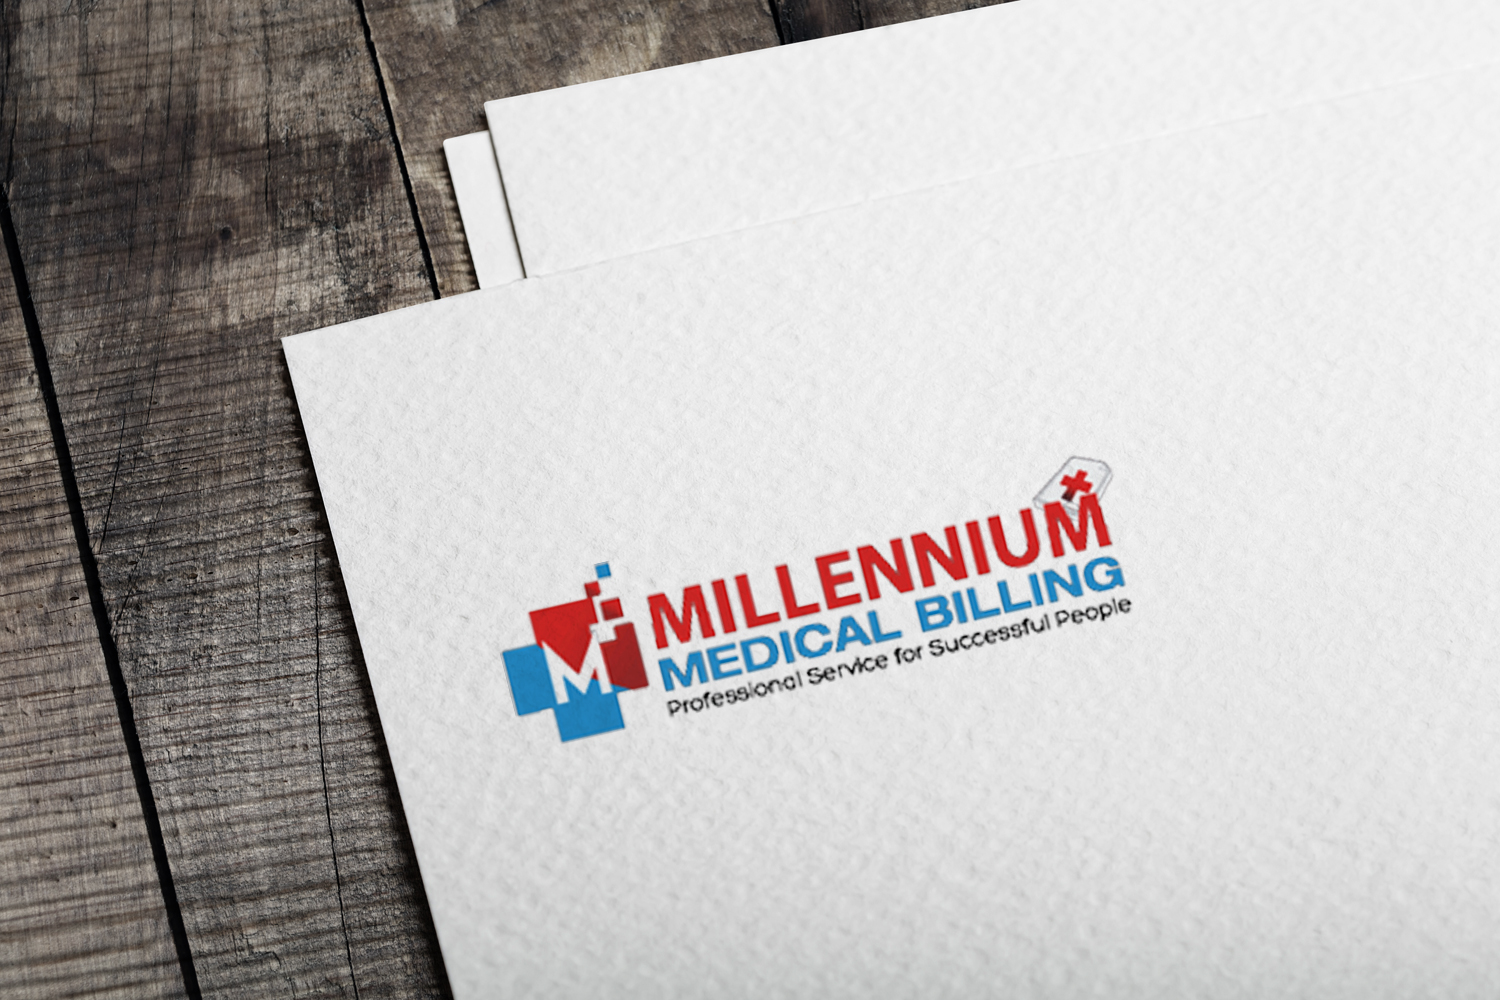 Millennium Medical Billing (Logo)